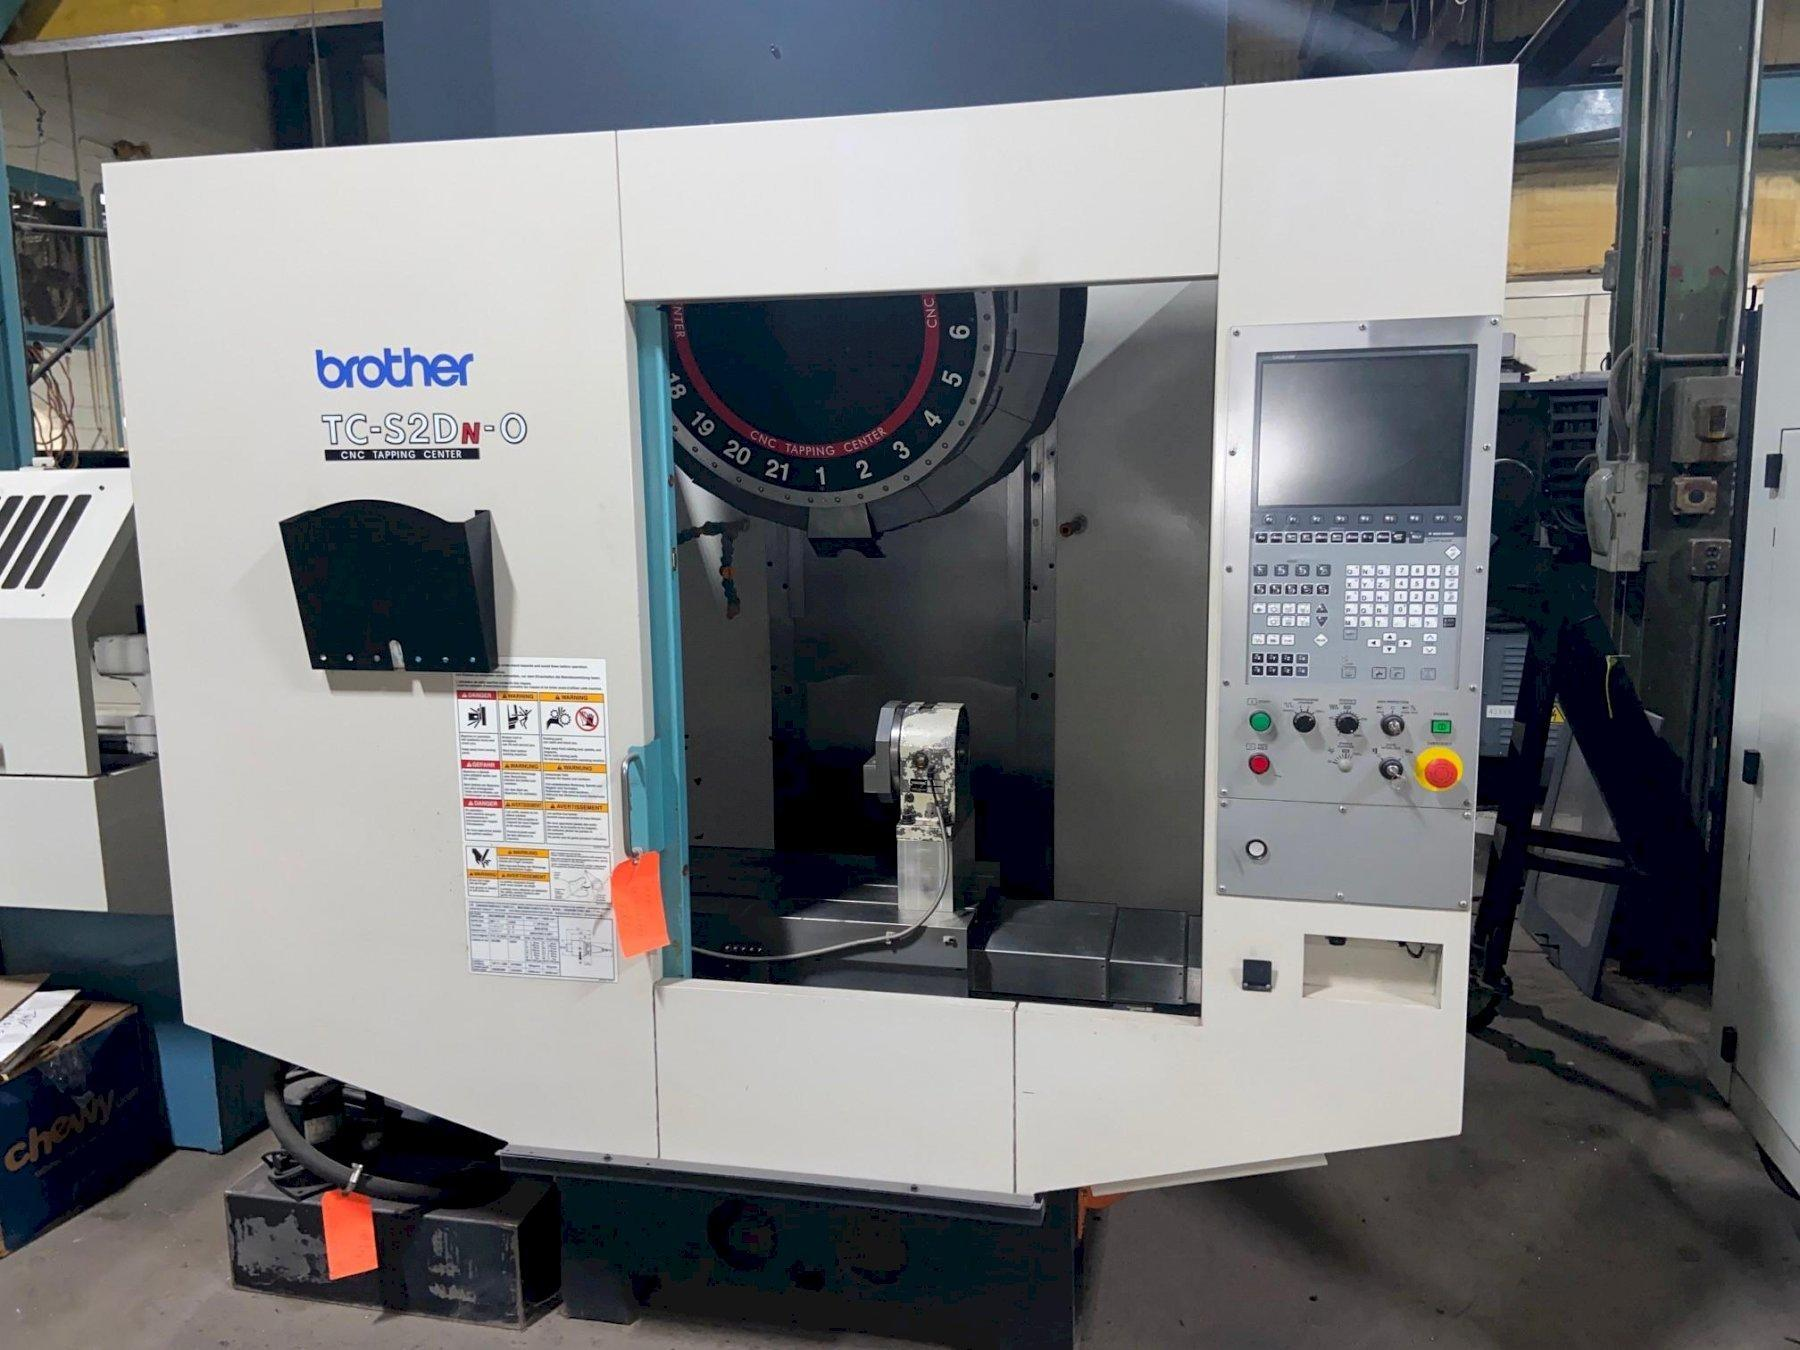 Brother TC-2SDN-O CNC Drilling & Tapping Center, B00 Control, 27.6